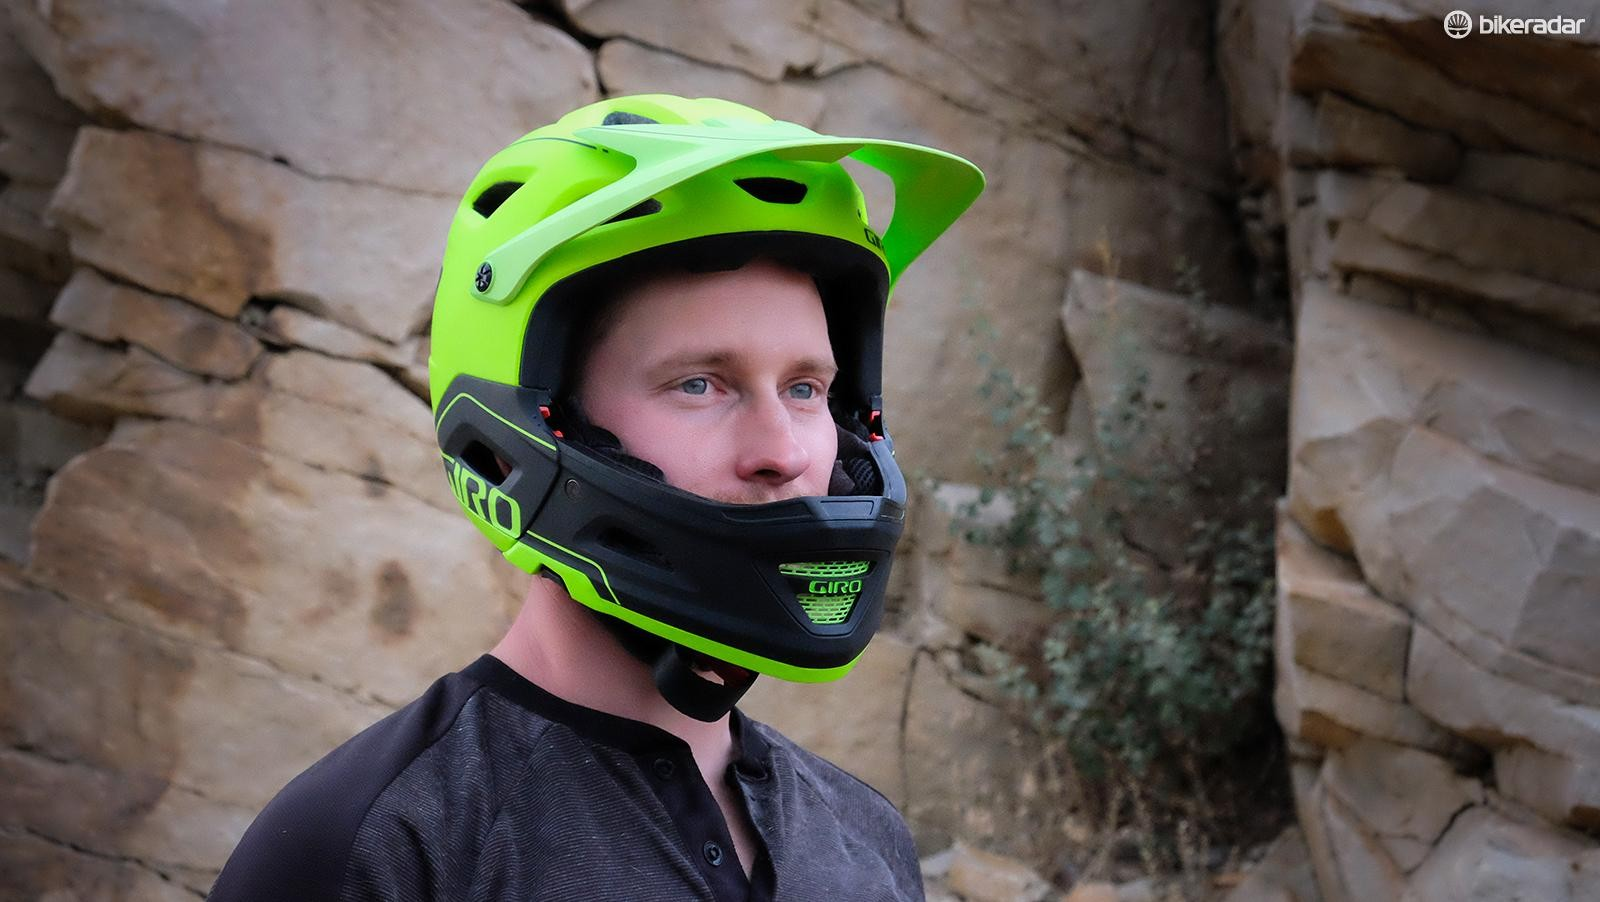 Giro's new Switchblade is a full-face first and a half-shell second. The helmet passes the ASTM-1952-DH standard with and without the chin bar installed